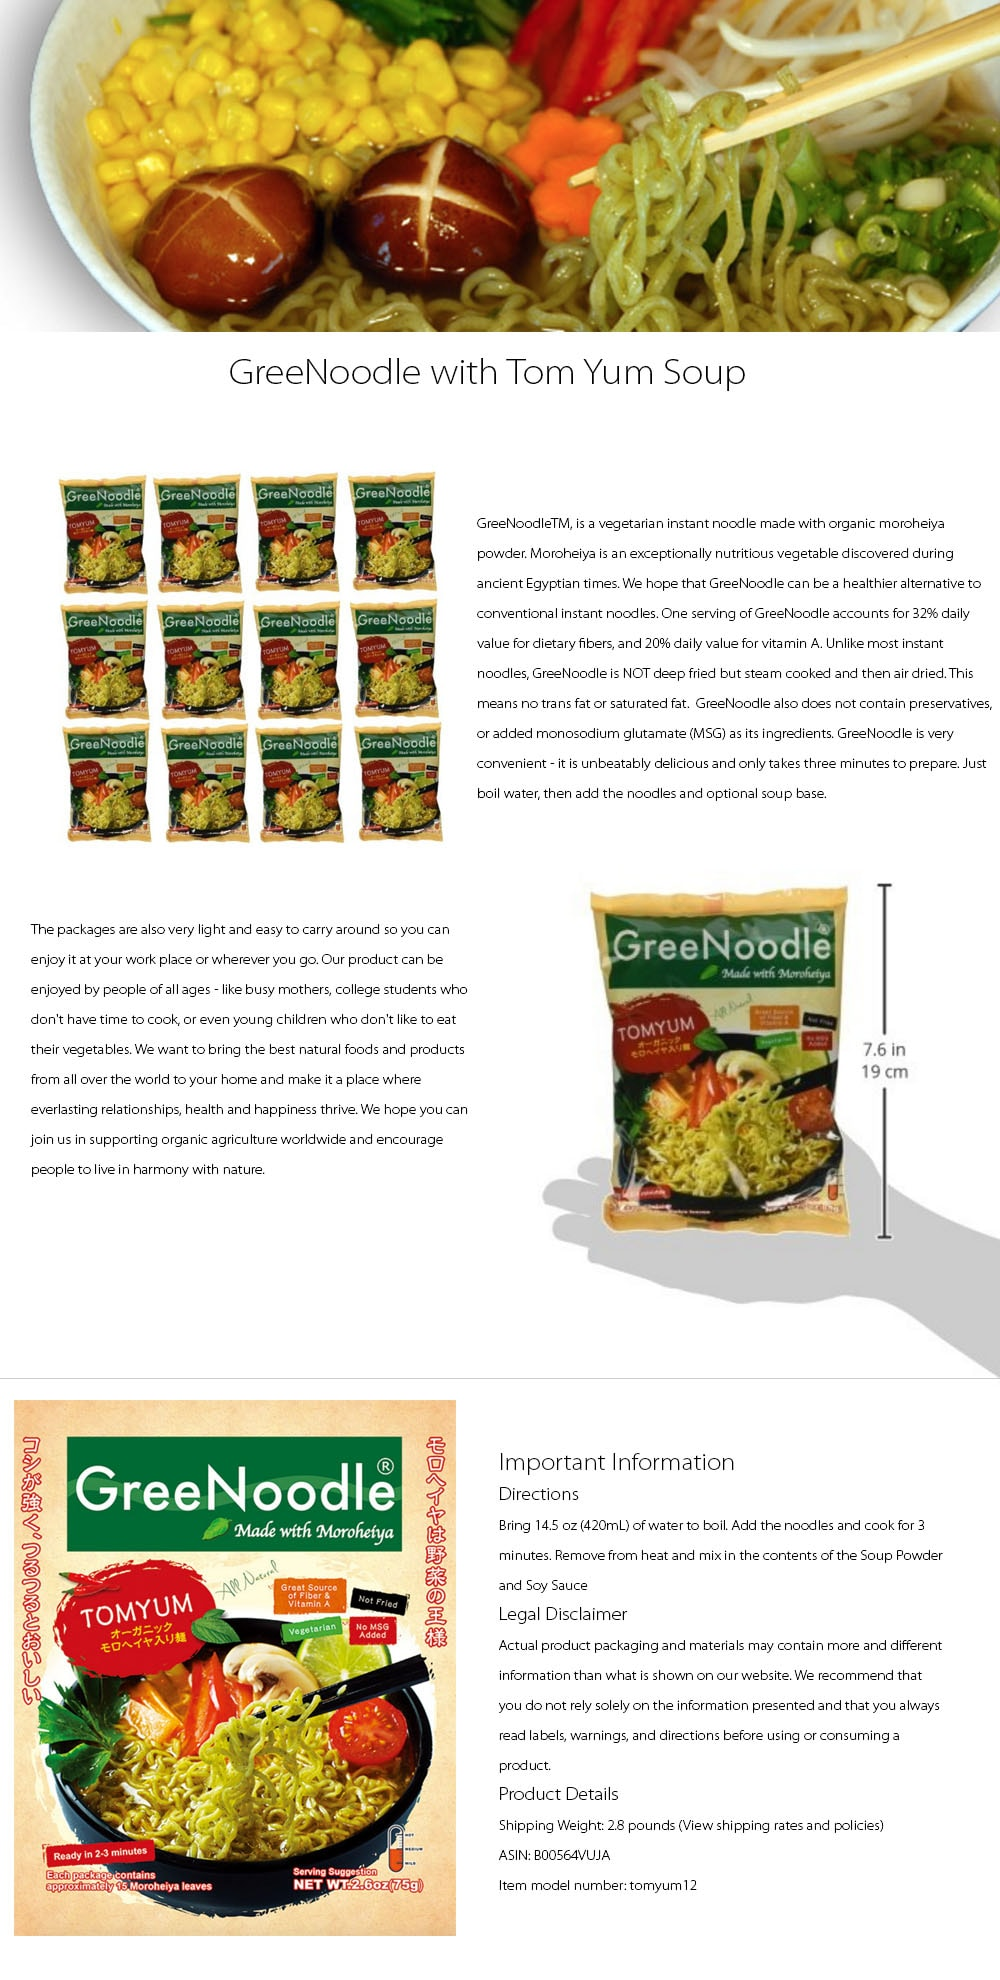 GreeNoodle with Tom Yum Soup (12 count) Healthy and Delicious